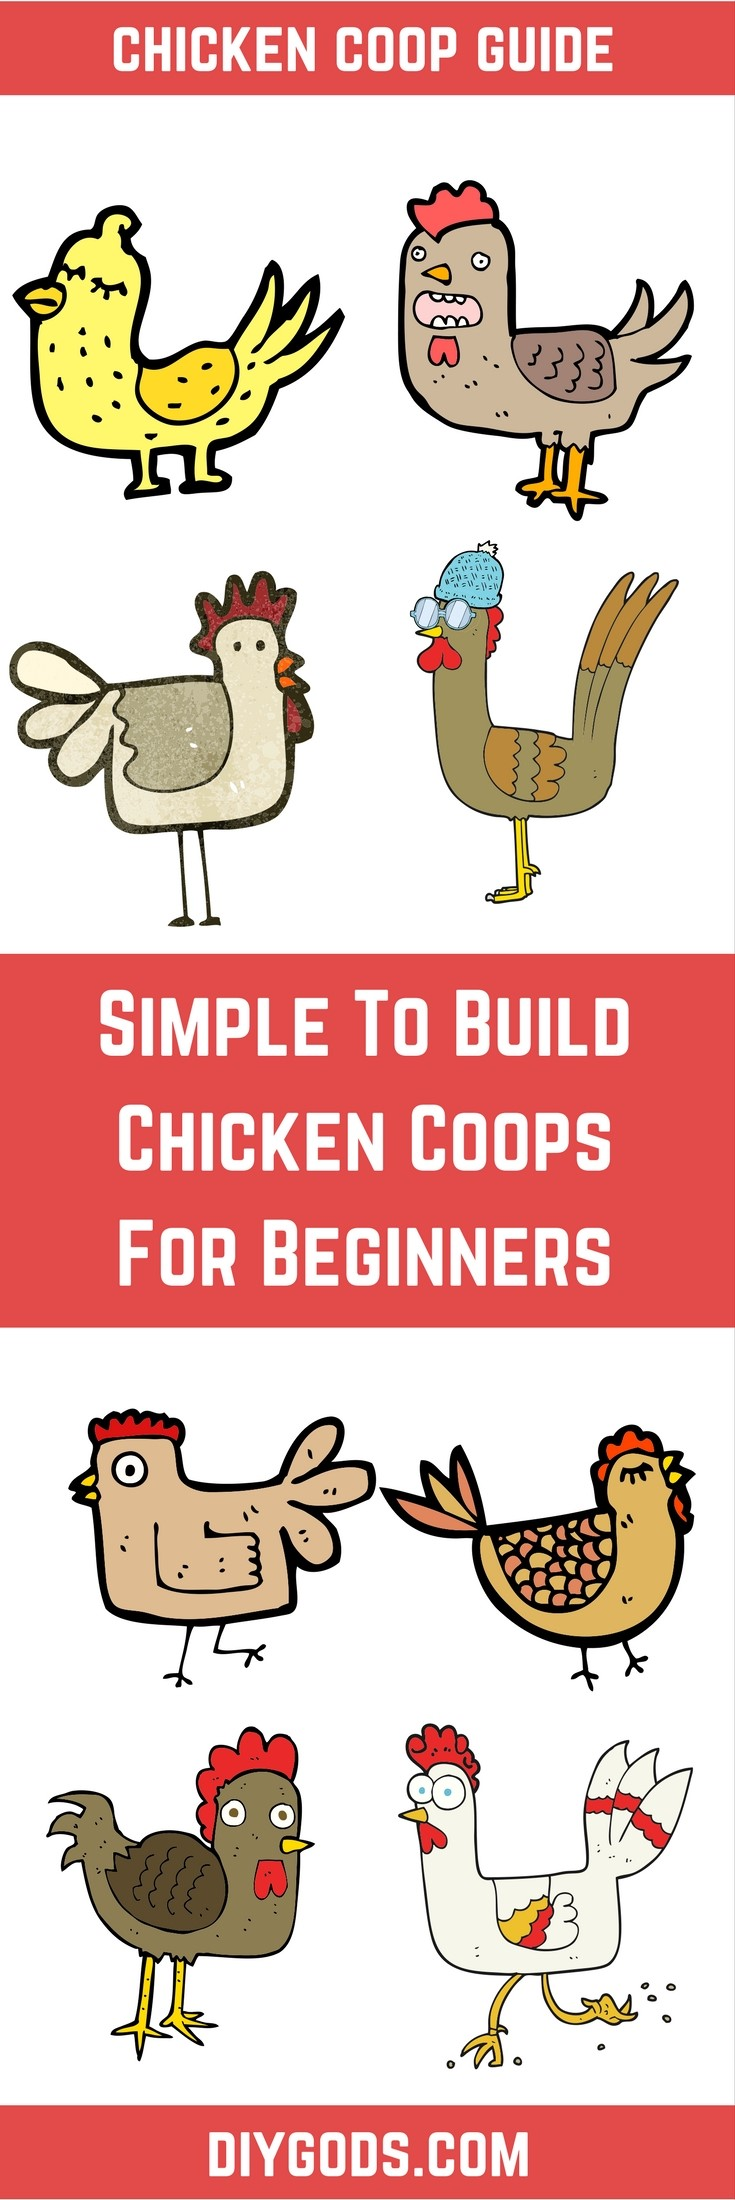 Simple To Build Chicken Coops For Beginners